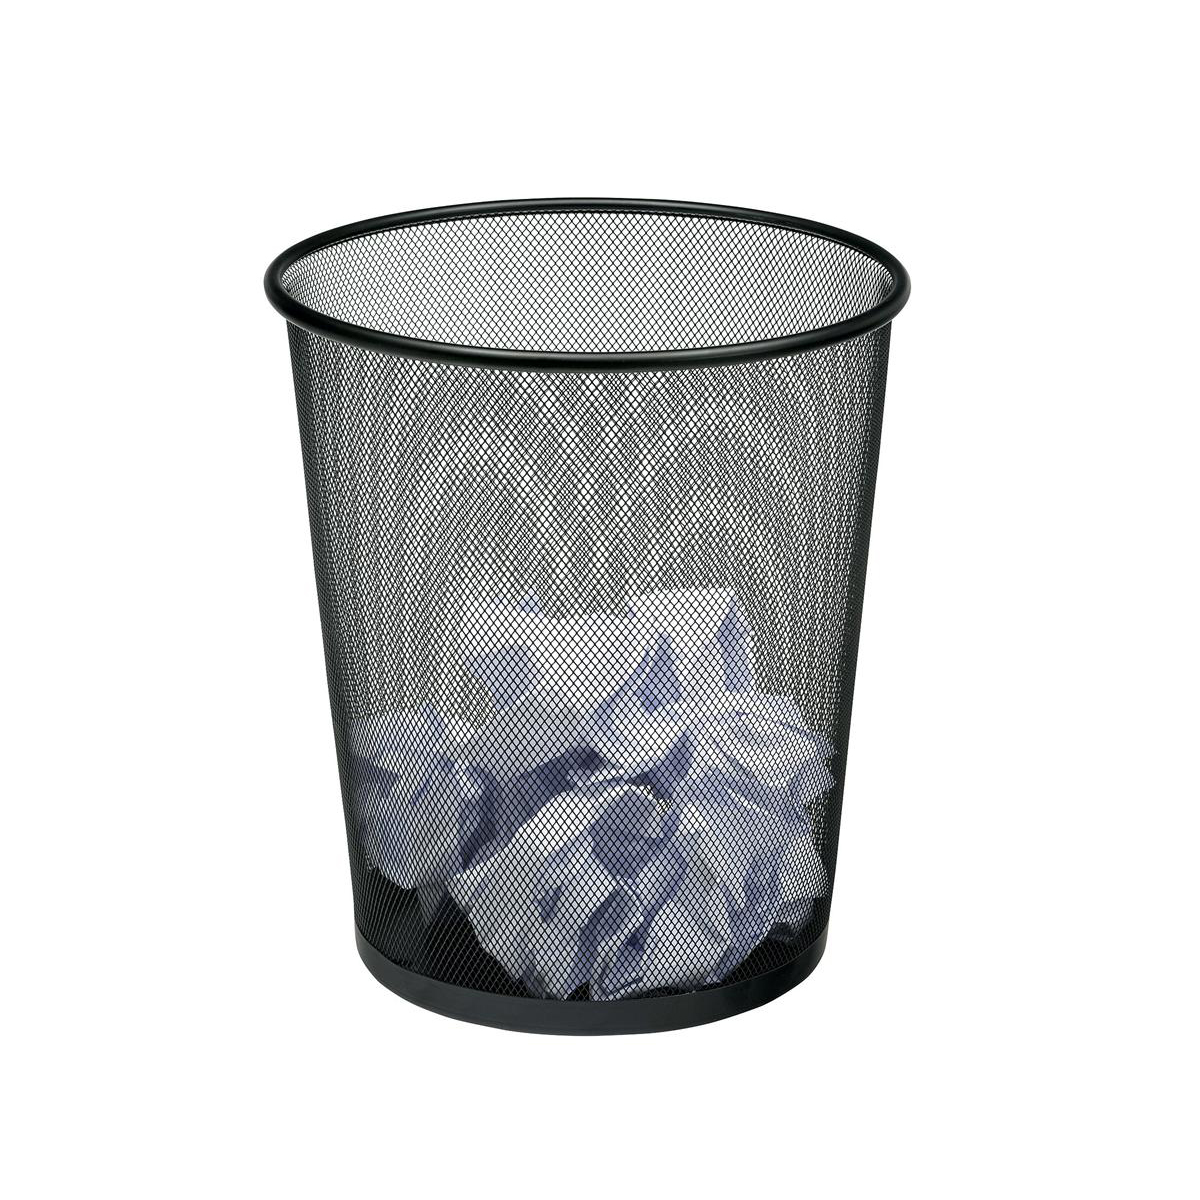 5 Star Office Mesh Waste Bin Lightweight Sturdy Scratch Resistant 15-20 Litres 205x345mm Black